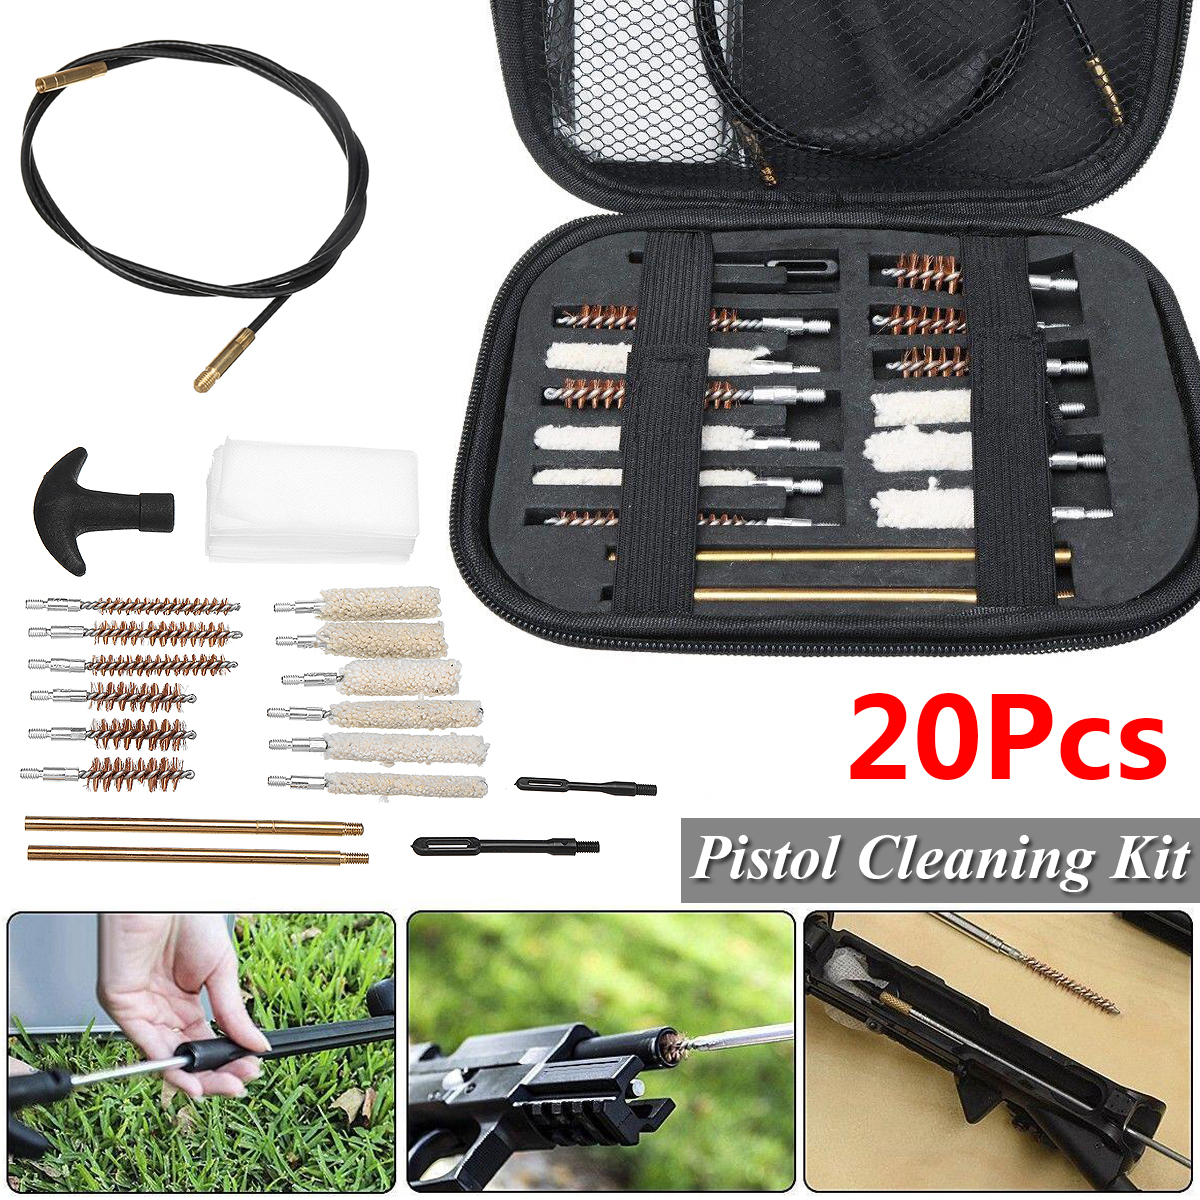 20pcs/Set Pistol Cleaning Kit Portable Rifle Brushes For Size 22 357 38 40 44 45 9mm Outdoor Clean Tool With Carrying Case